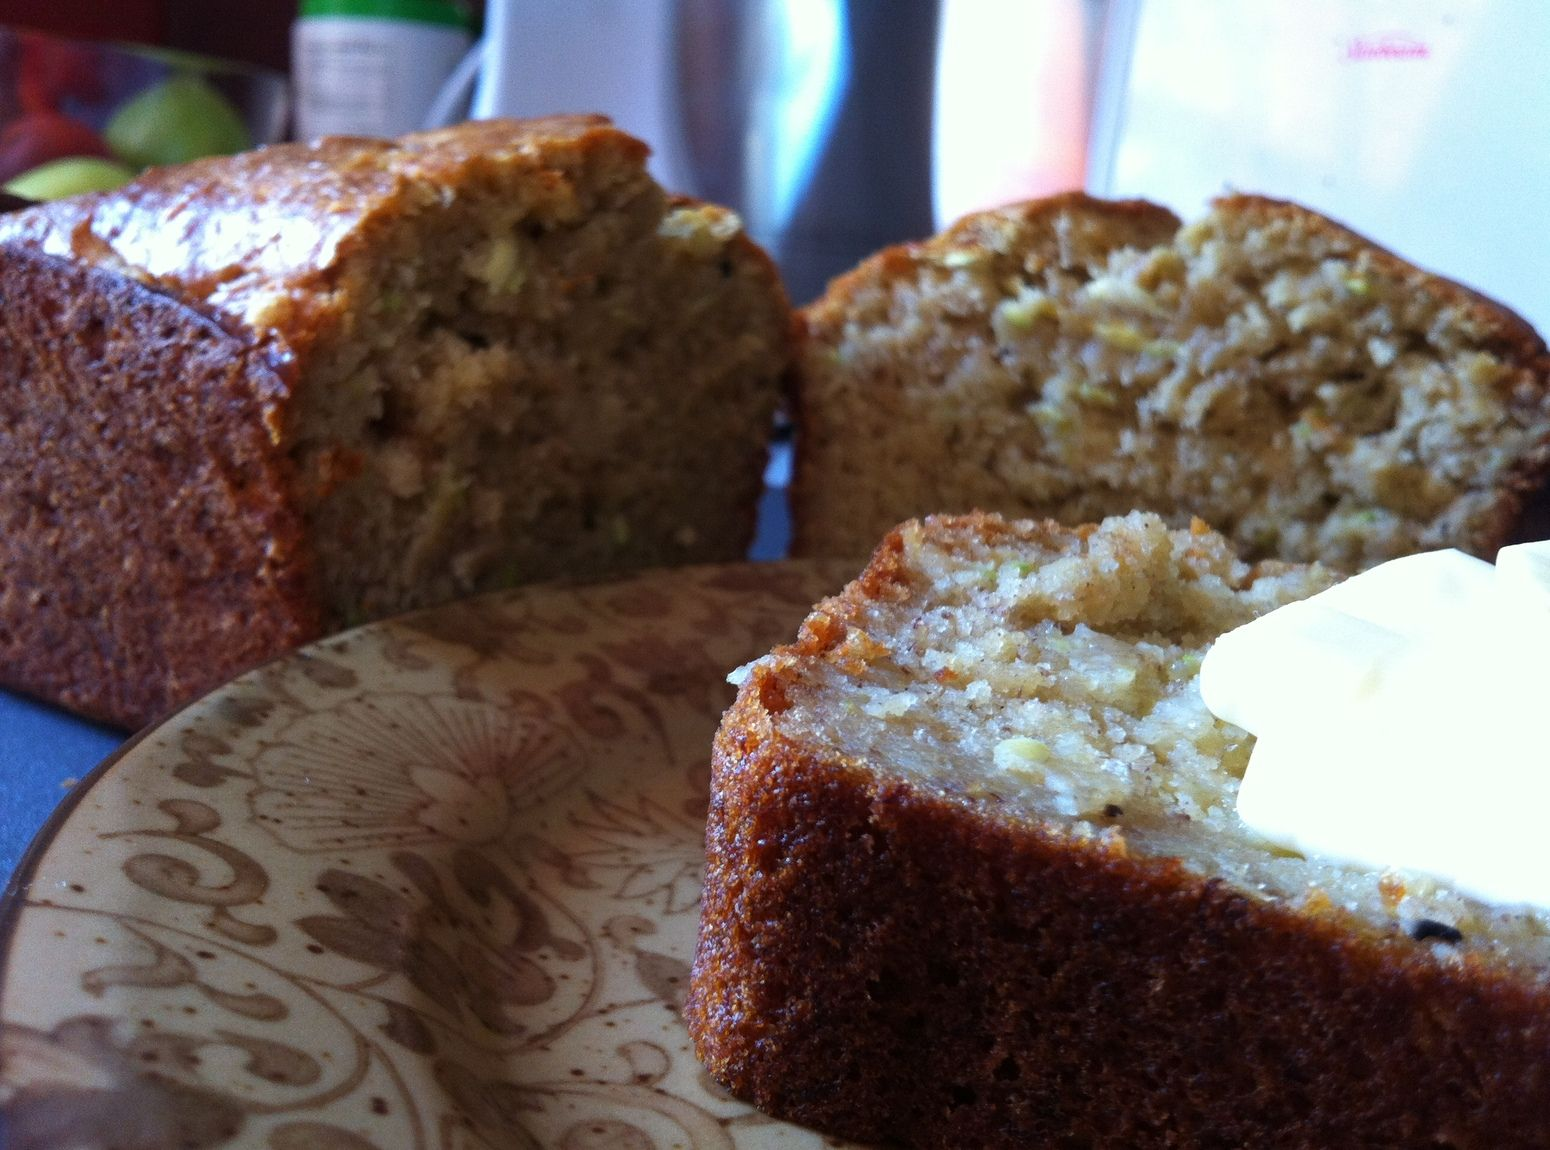 Buttermilk Banana Zucchini Bread Buttermilk Recipes Zucchini Bread Recipes Zucchini Banana Bread